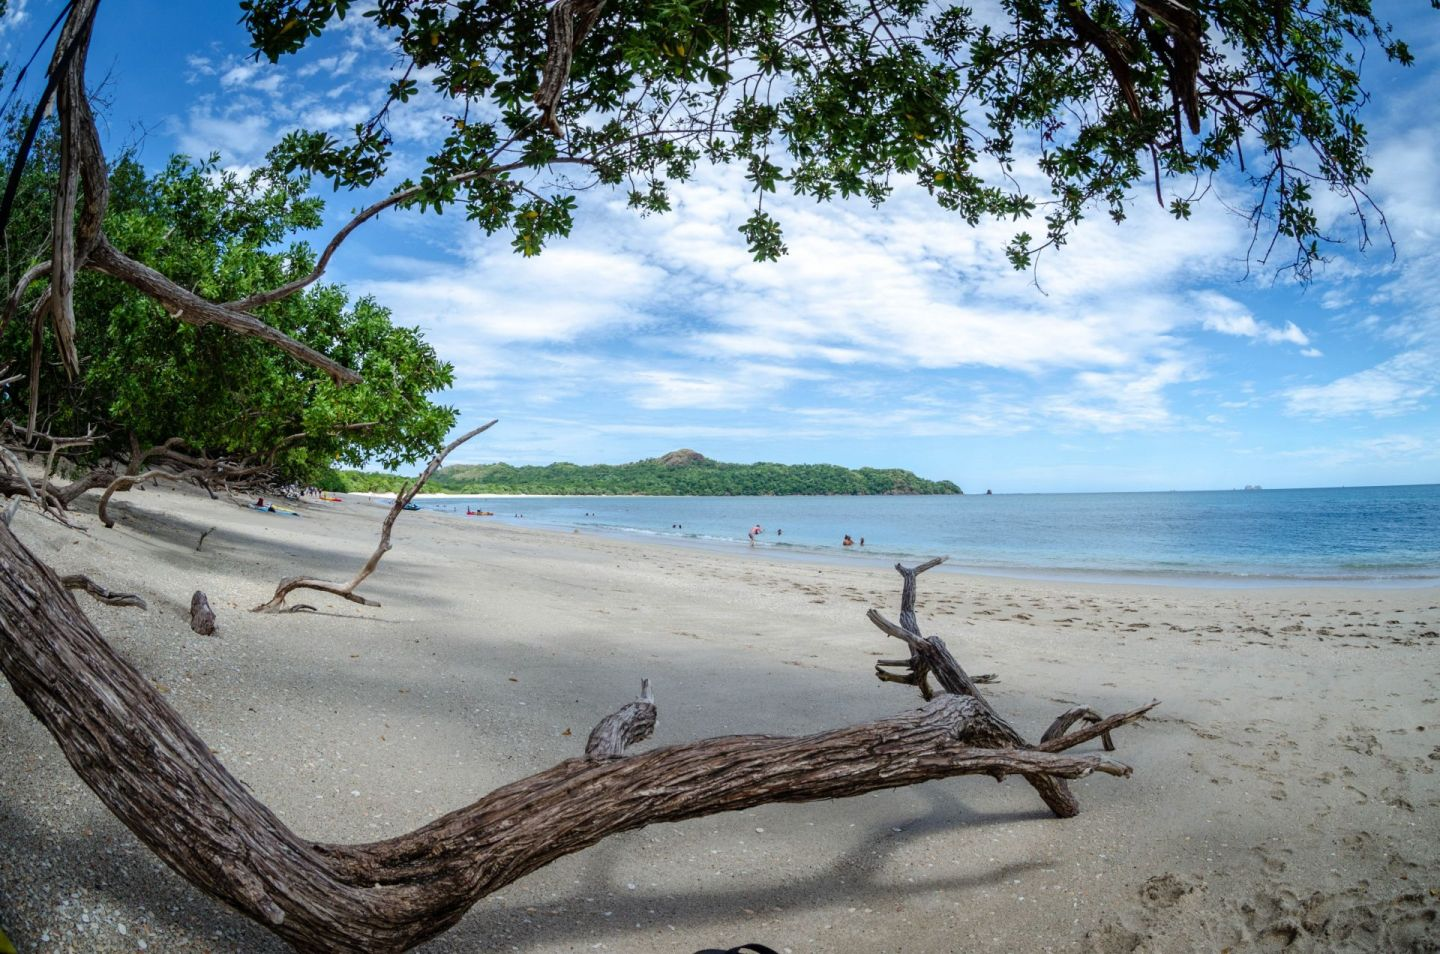 Top holiday locations for 2020: Costa Rica